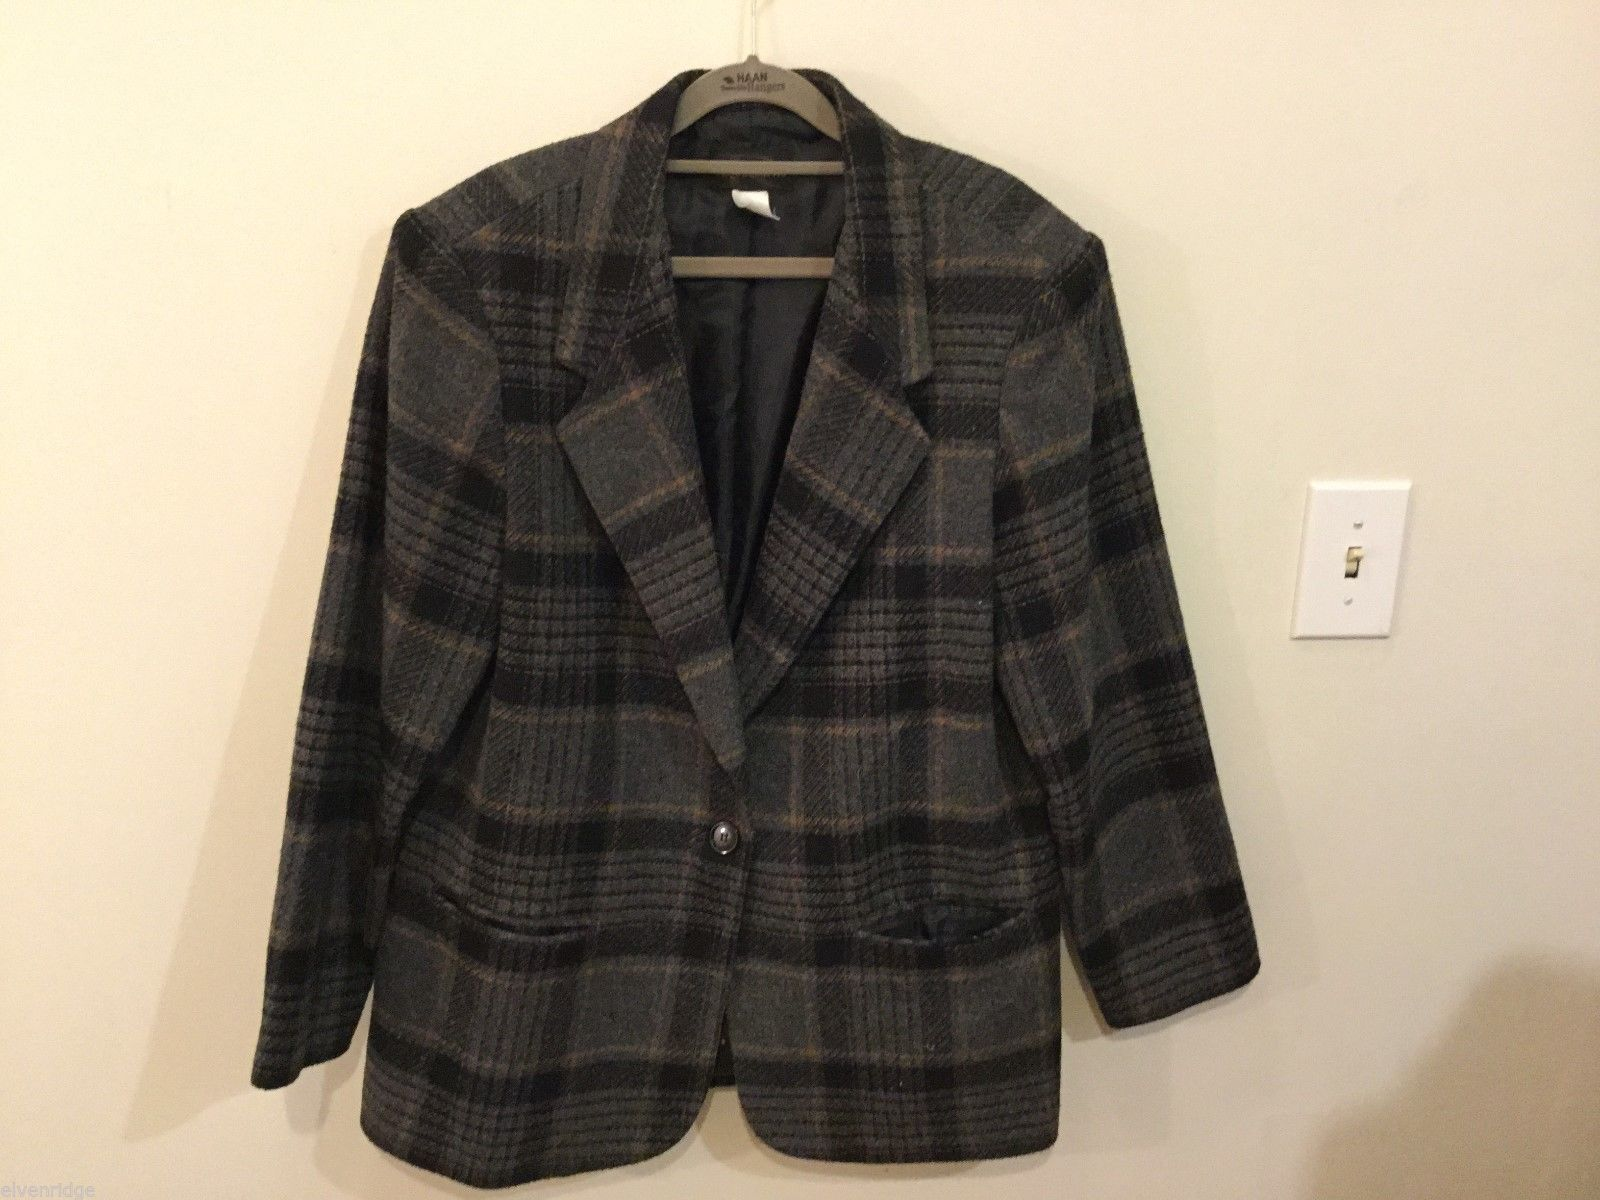 Requirements Women's Plaid Peacoat, Size 14